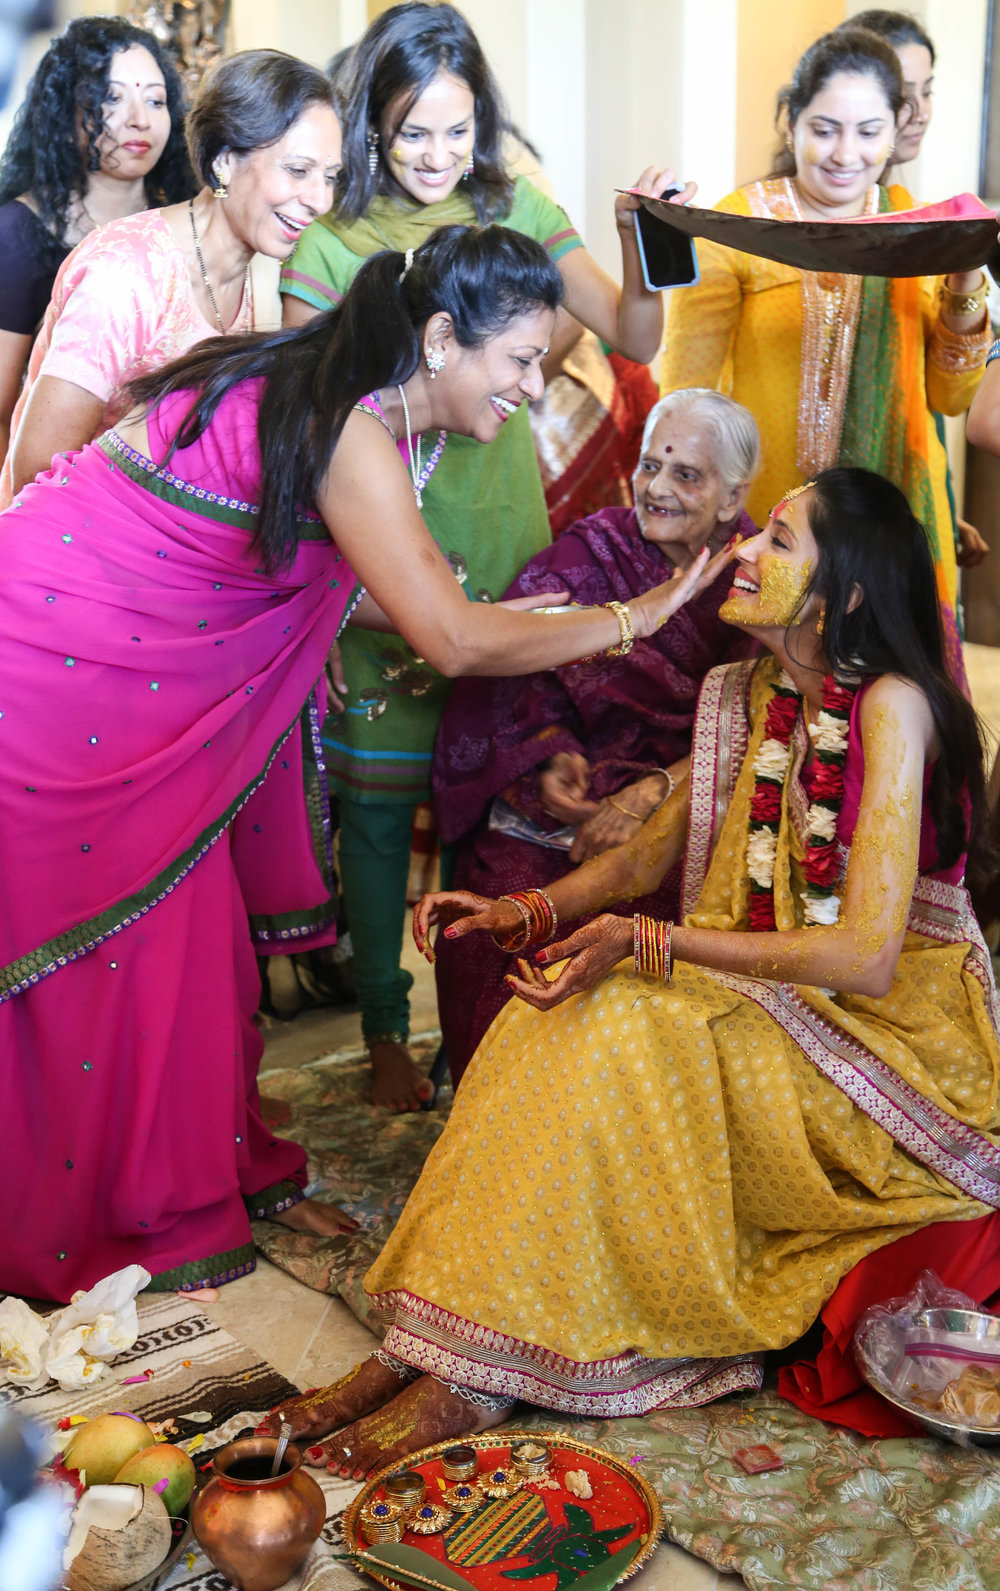 Pithi ceremony where one of the Aunties is applying Haldi on the bride.